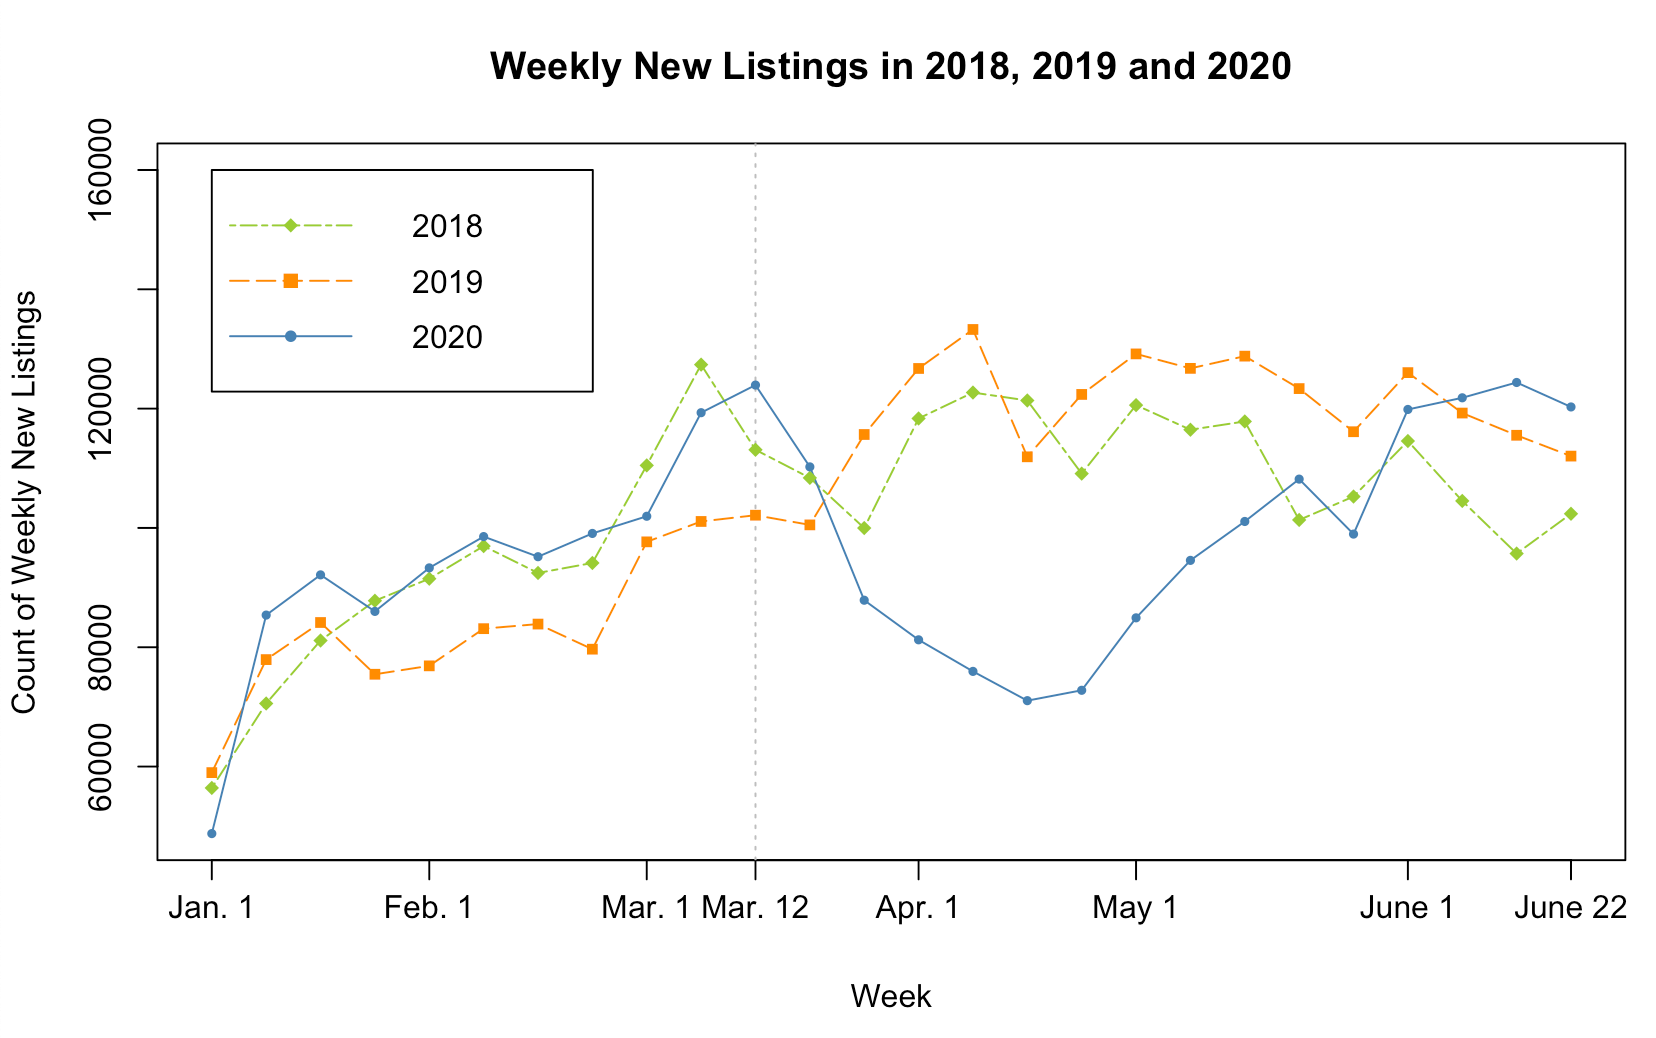 Graph of weekly counts of new listings from 2018 through 2020.